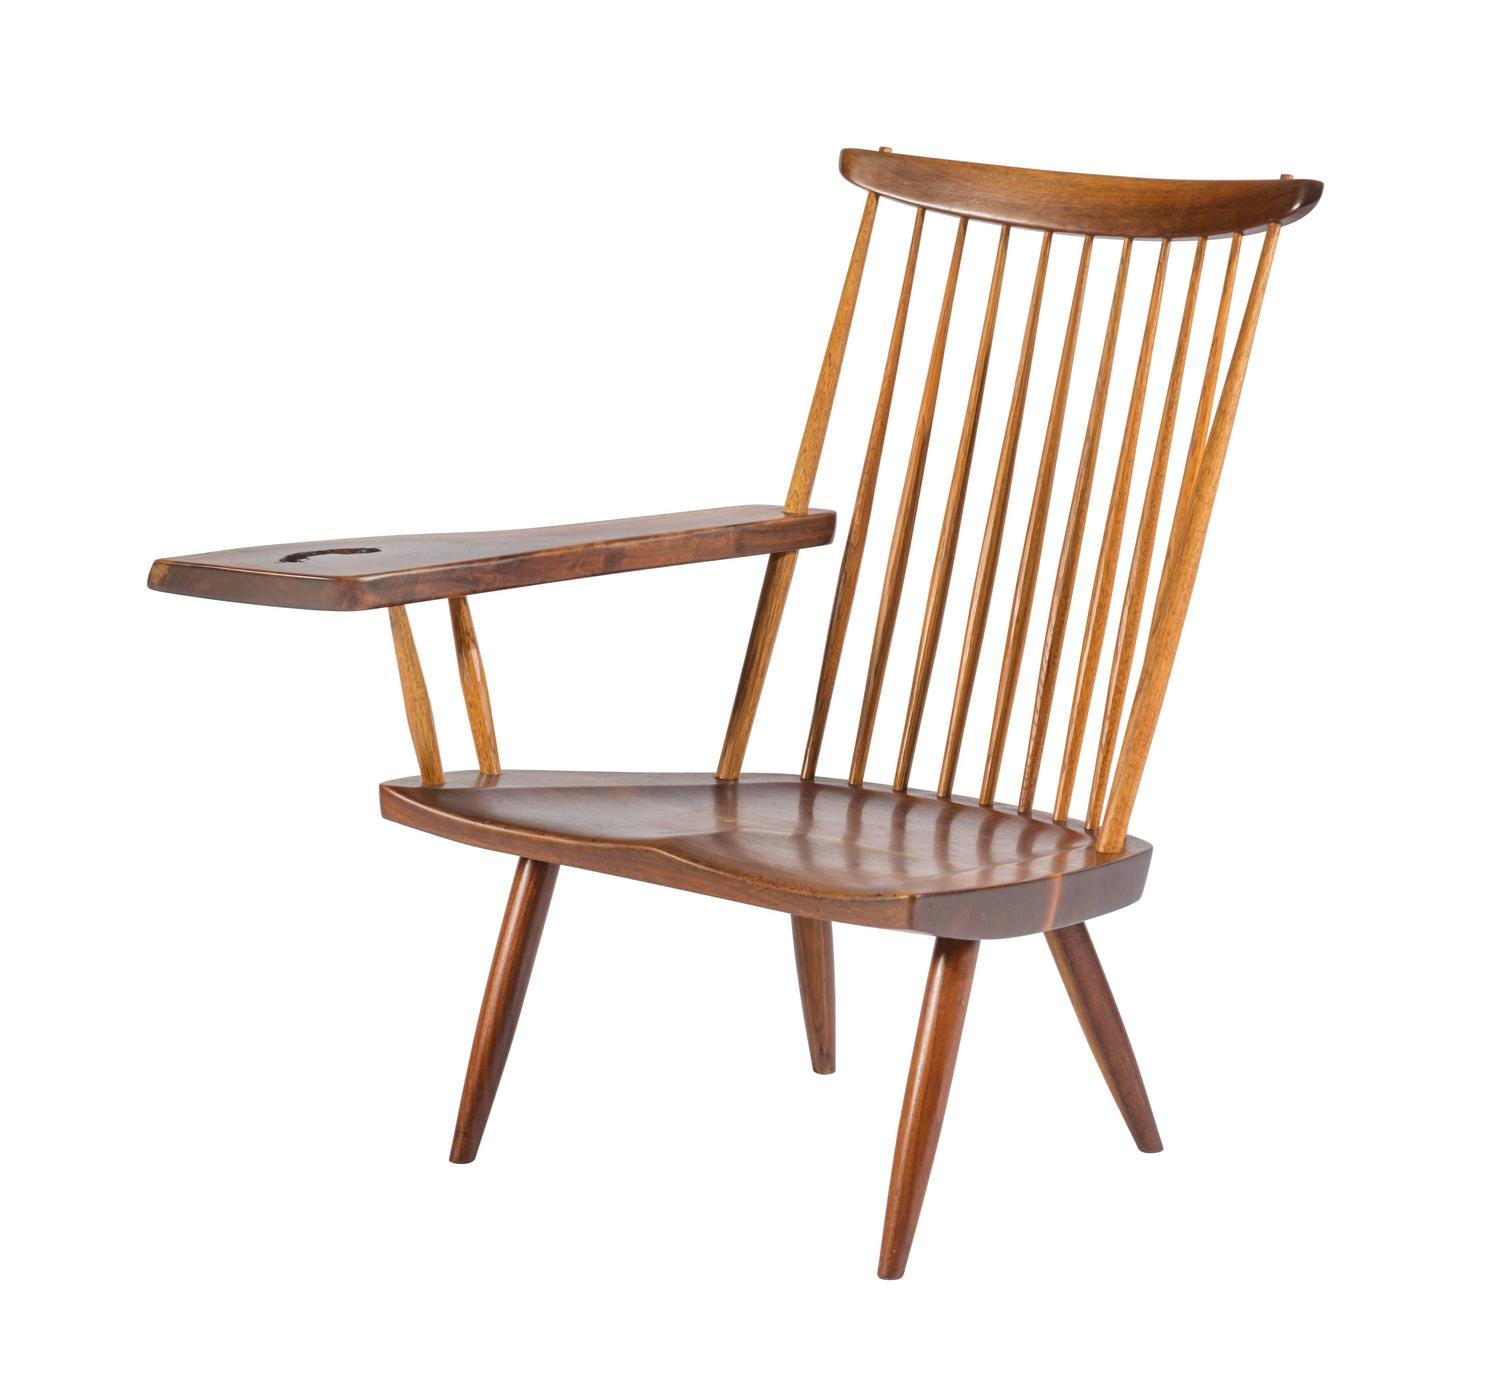 nakashima lounge chair with single arm for sale at 1stdibs